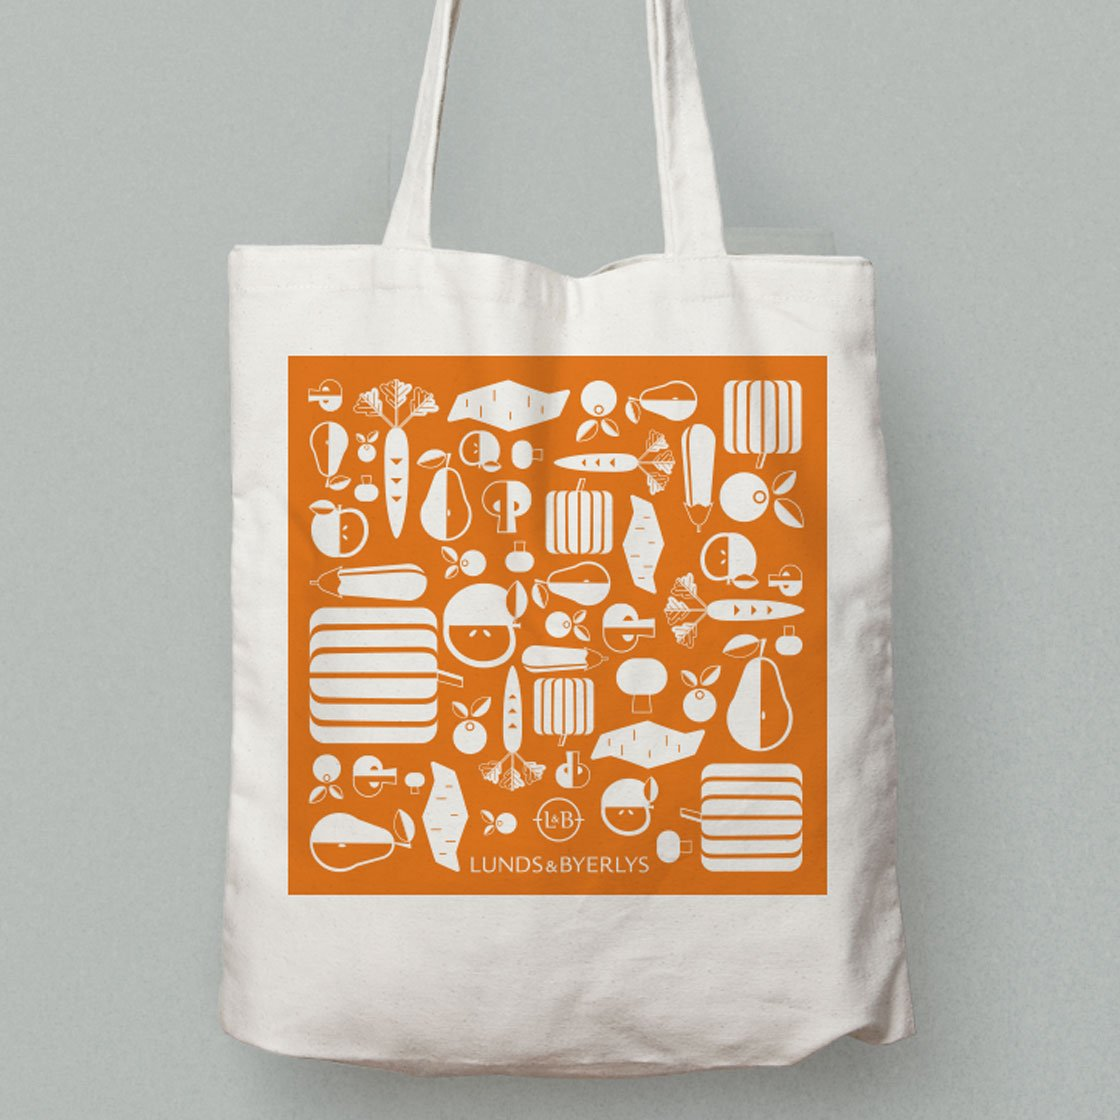 Tote bag with a screen printed design of fruits and vegetables